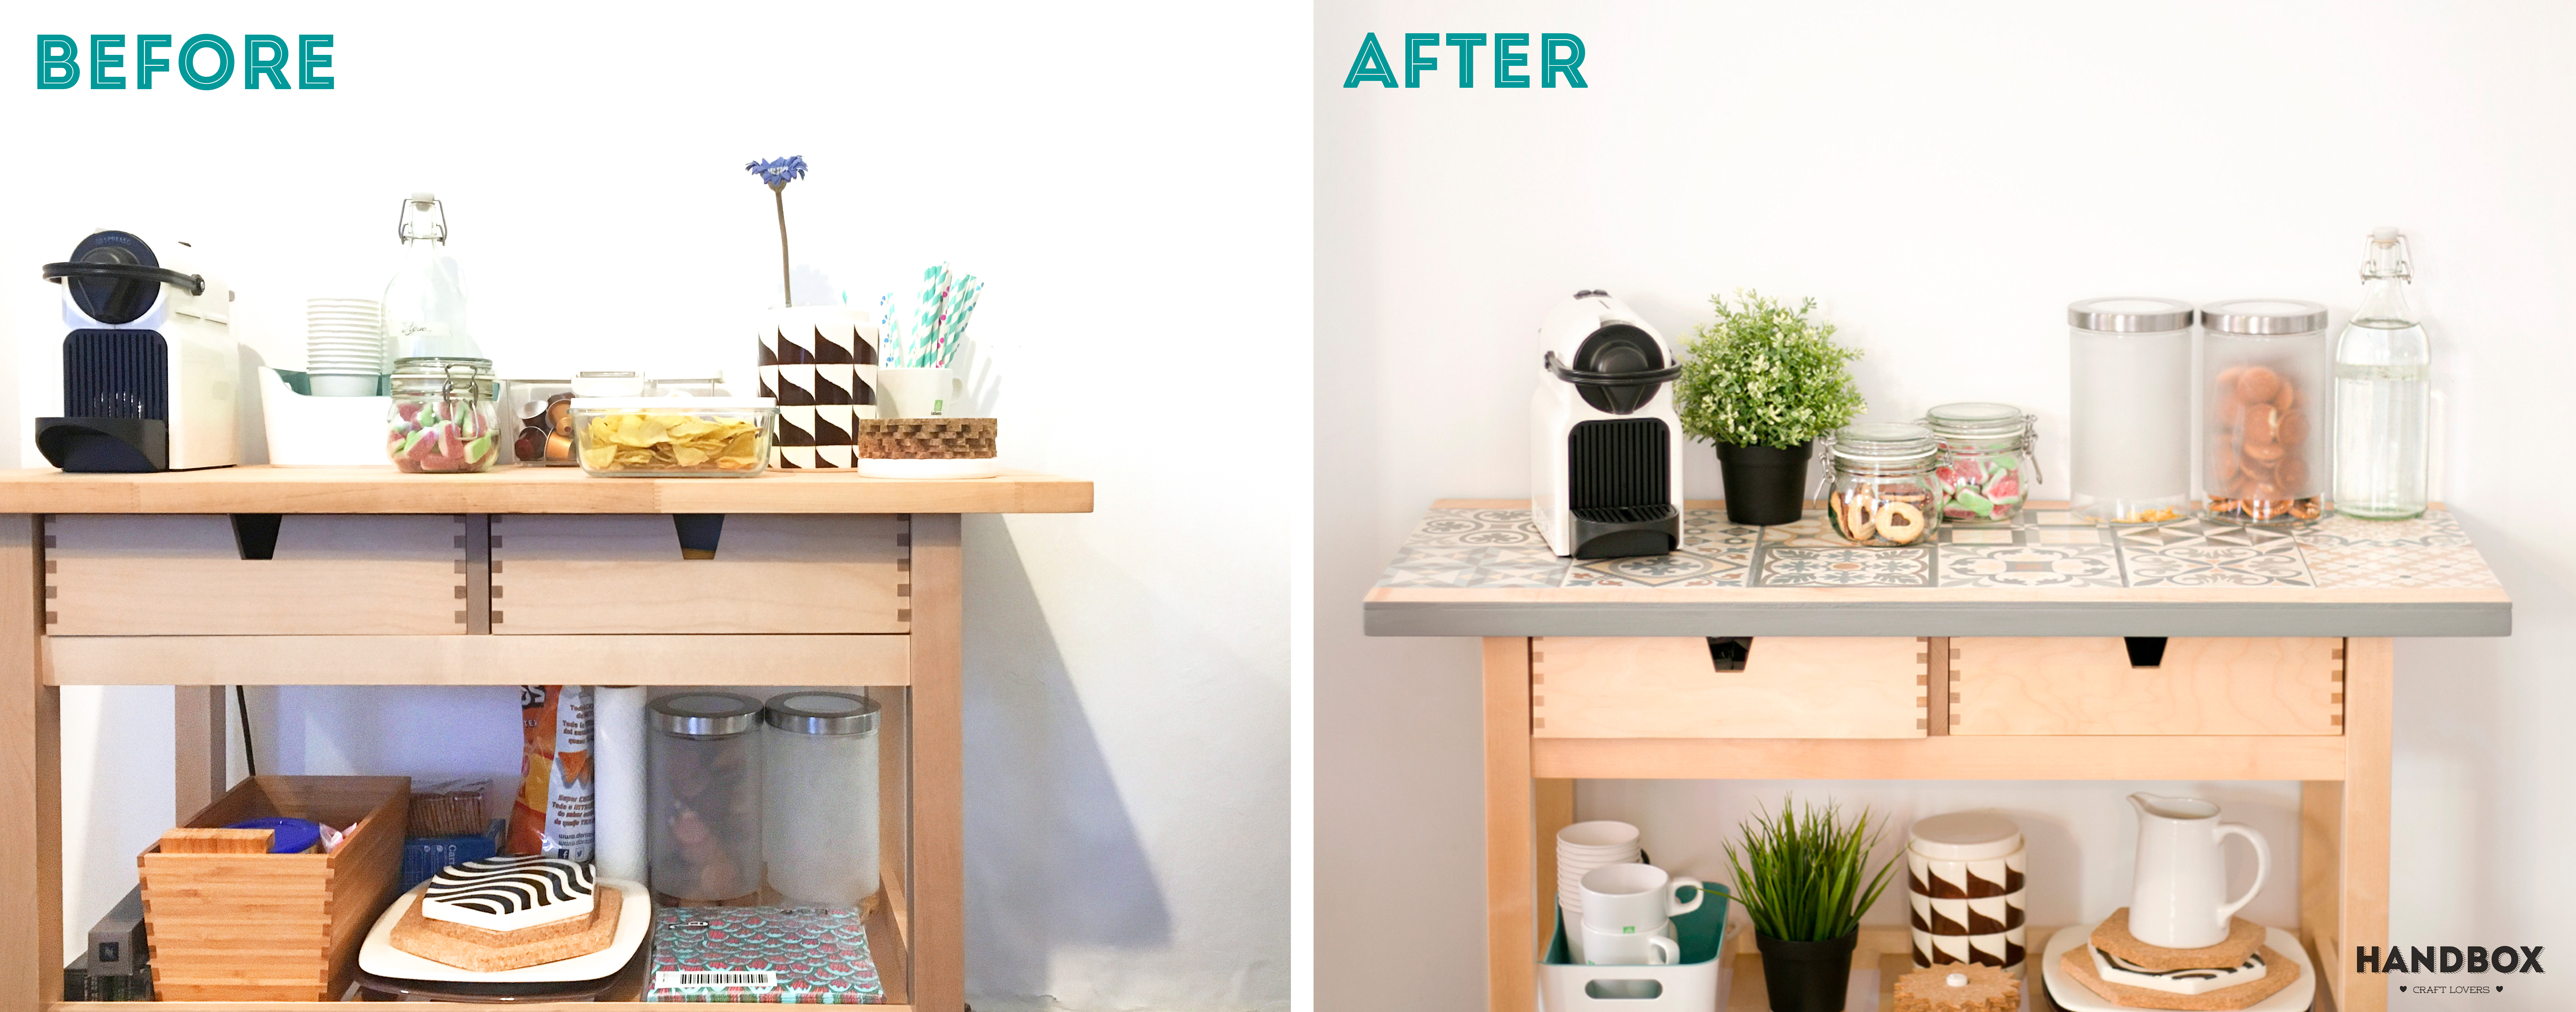 before after camarera ikea